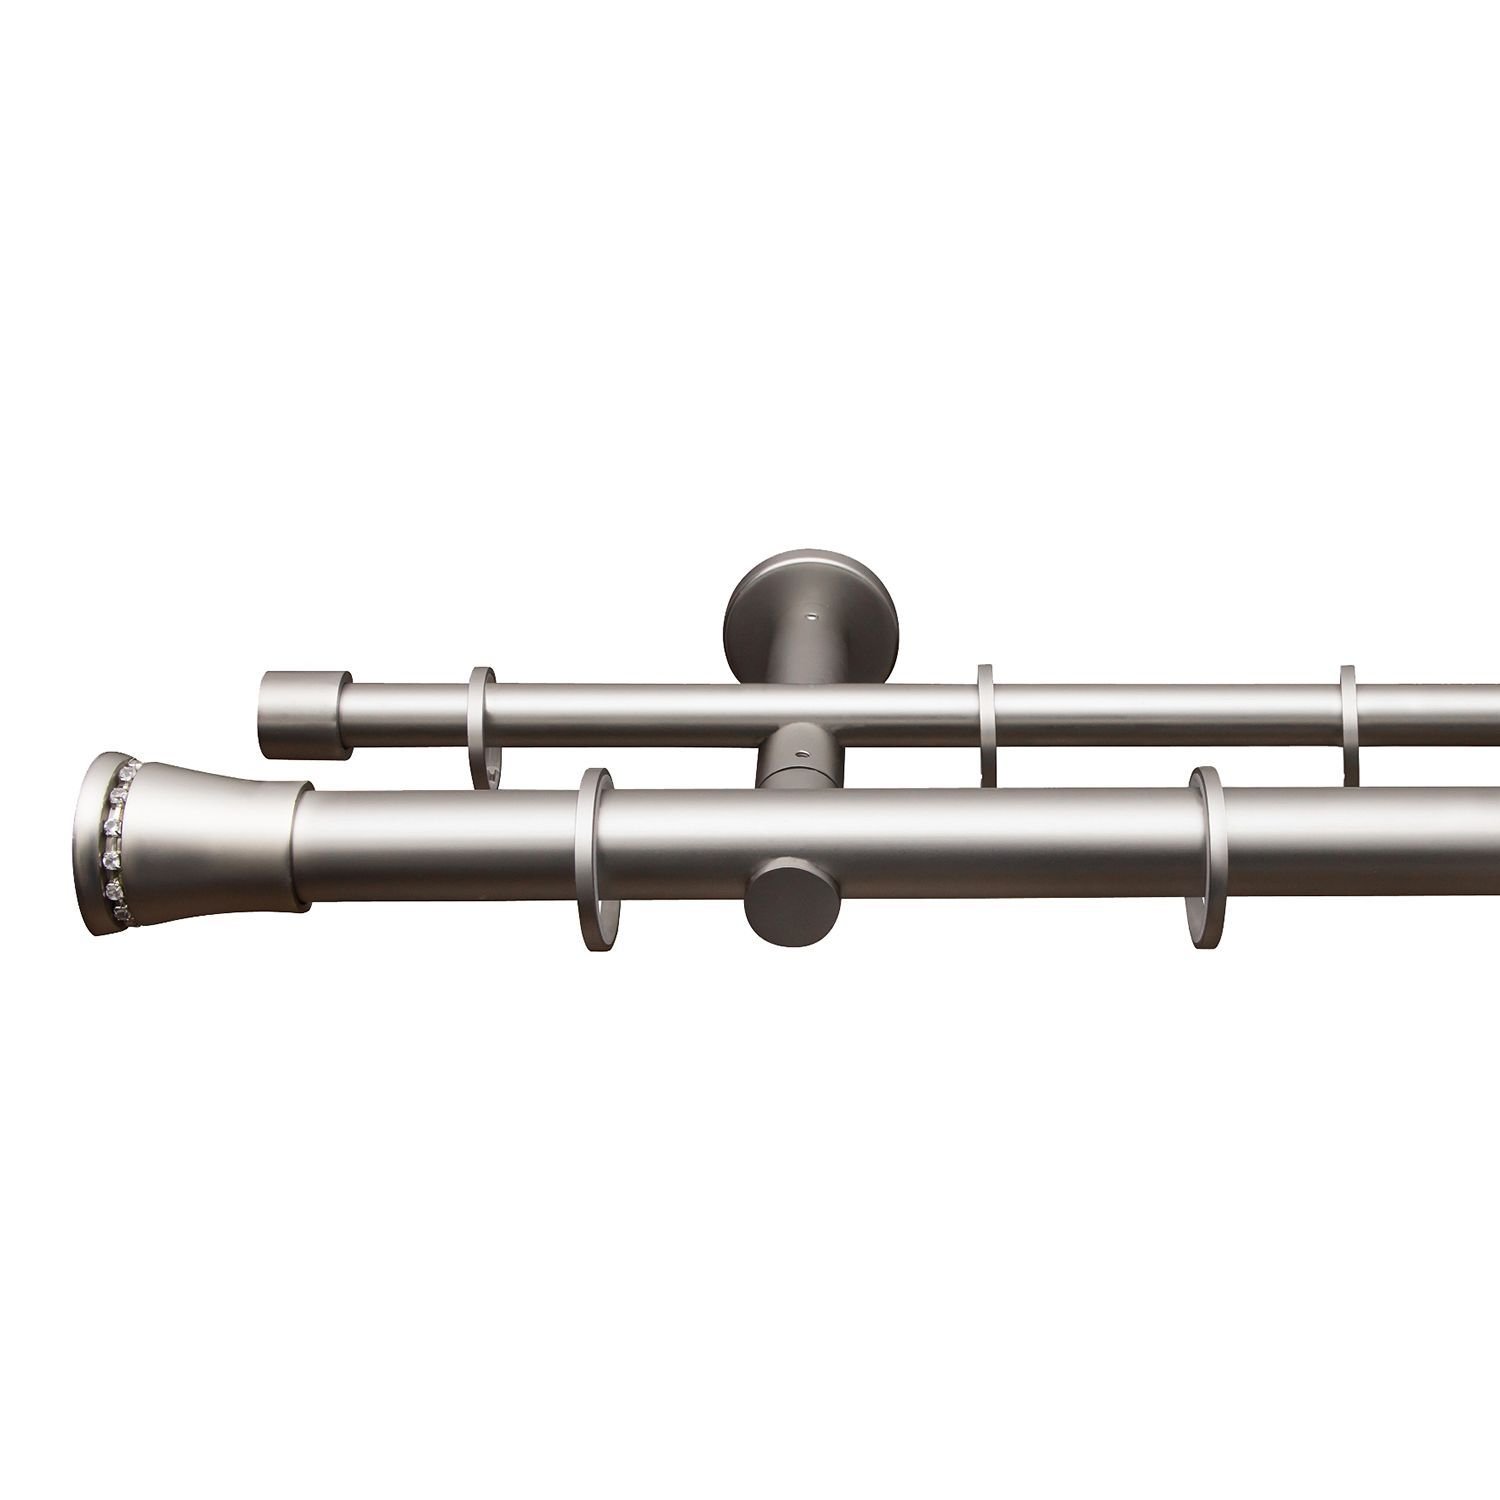 Photo of Curtain rods | Buy curtain rods online now